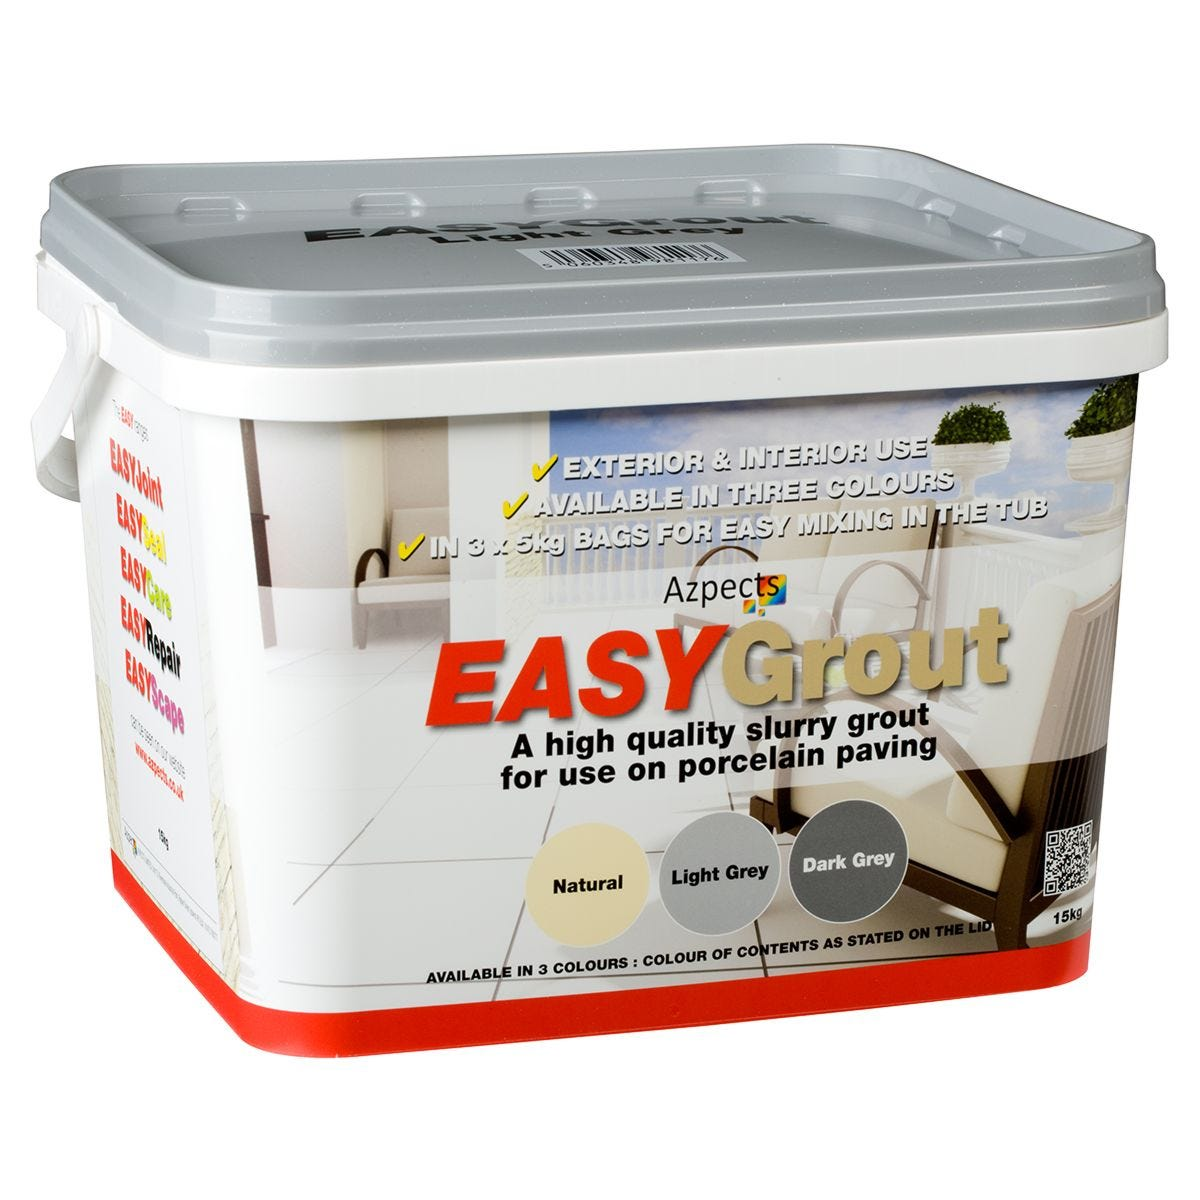 Azpects EASY Grout Light Grey - 15kg